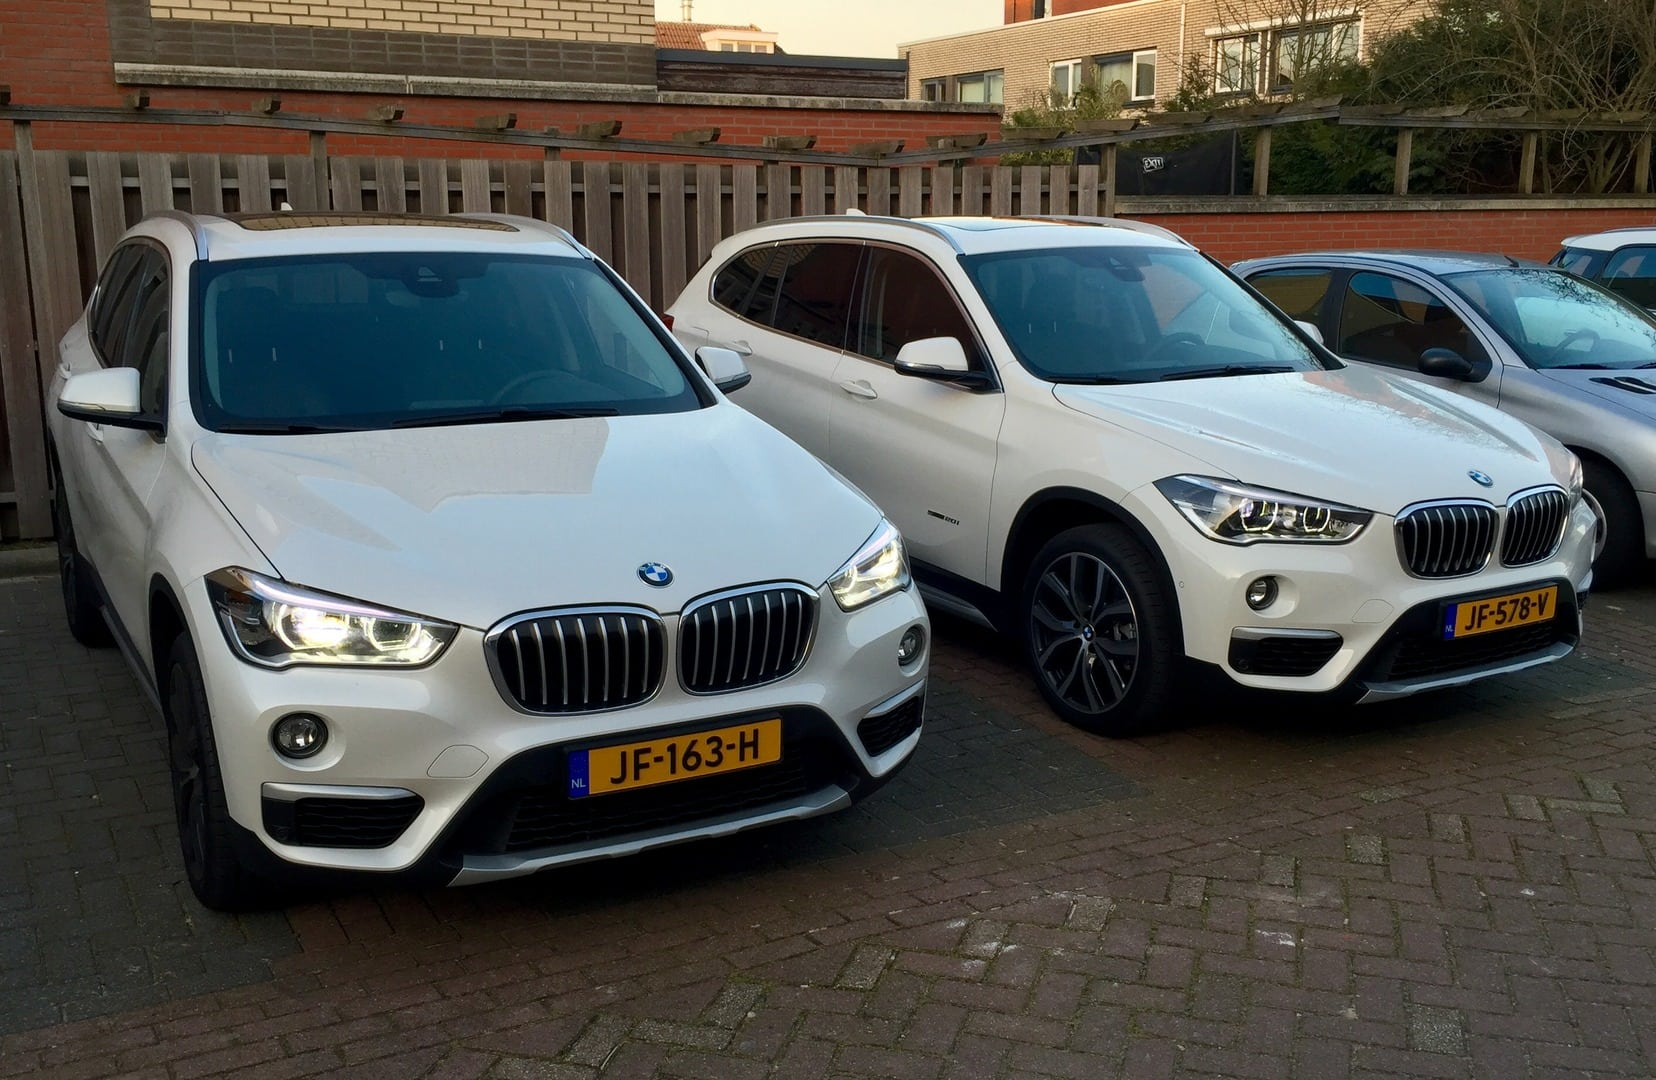 2018 Bmw X1 Vs X3 >> Mineral White vs Alpine White